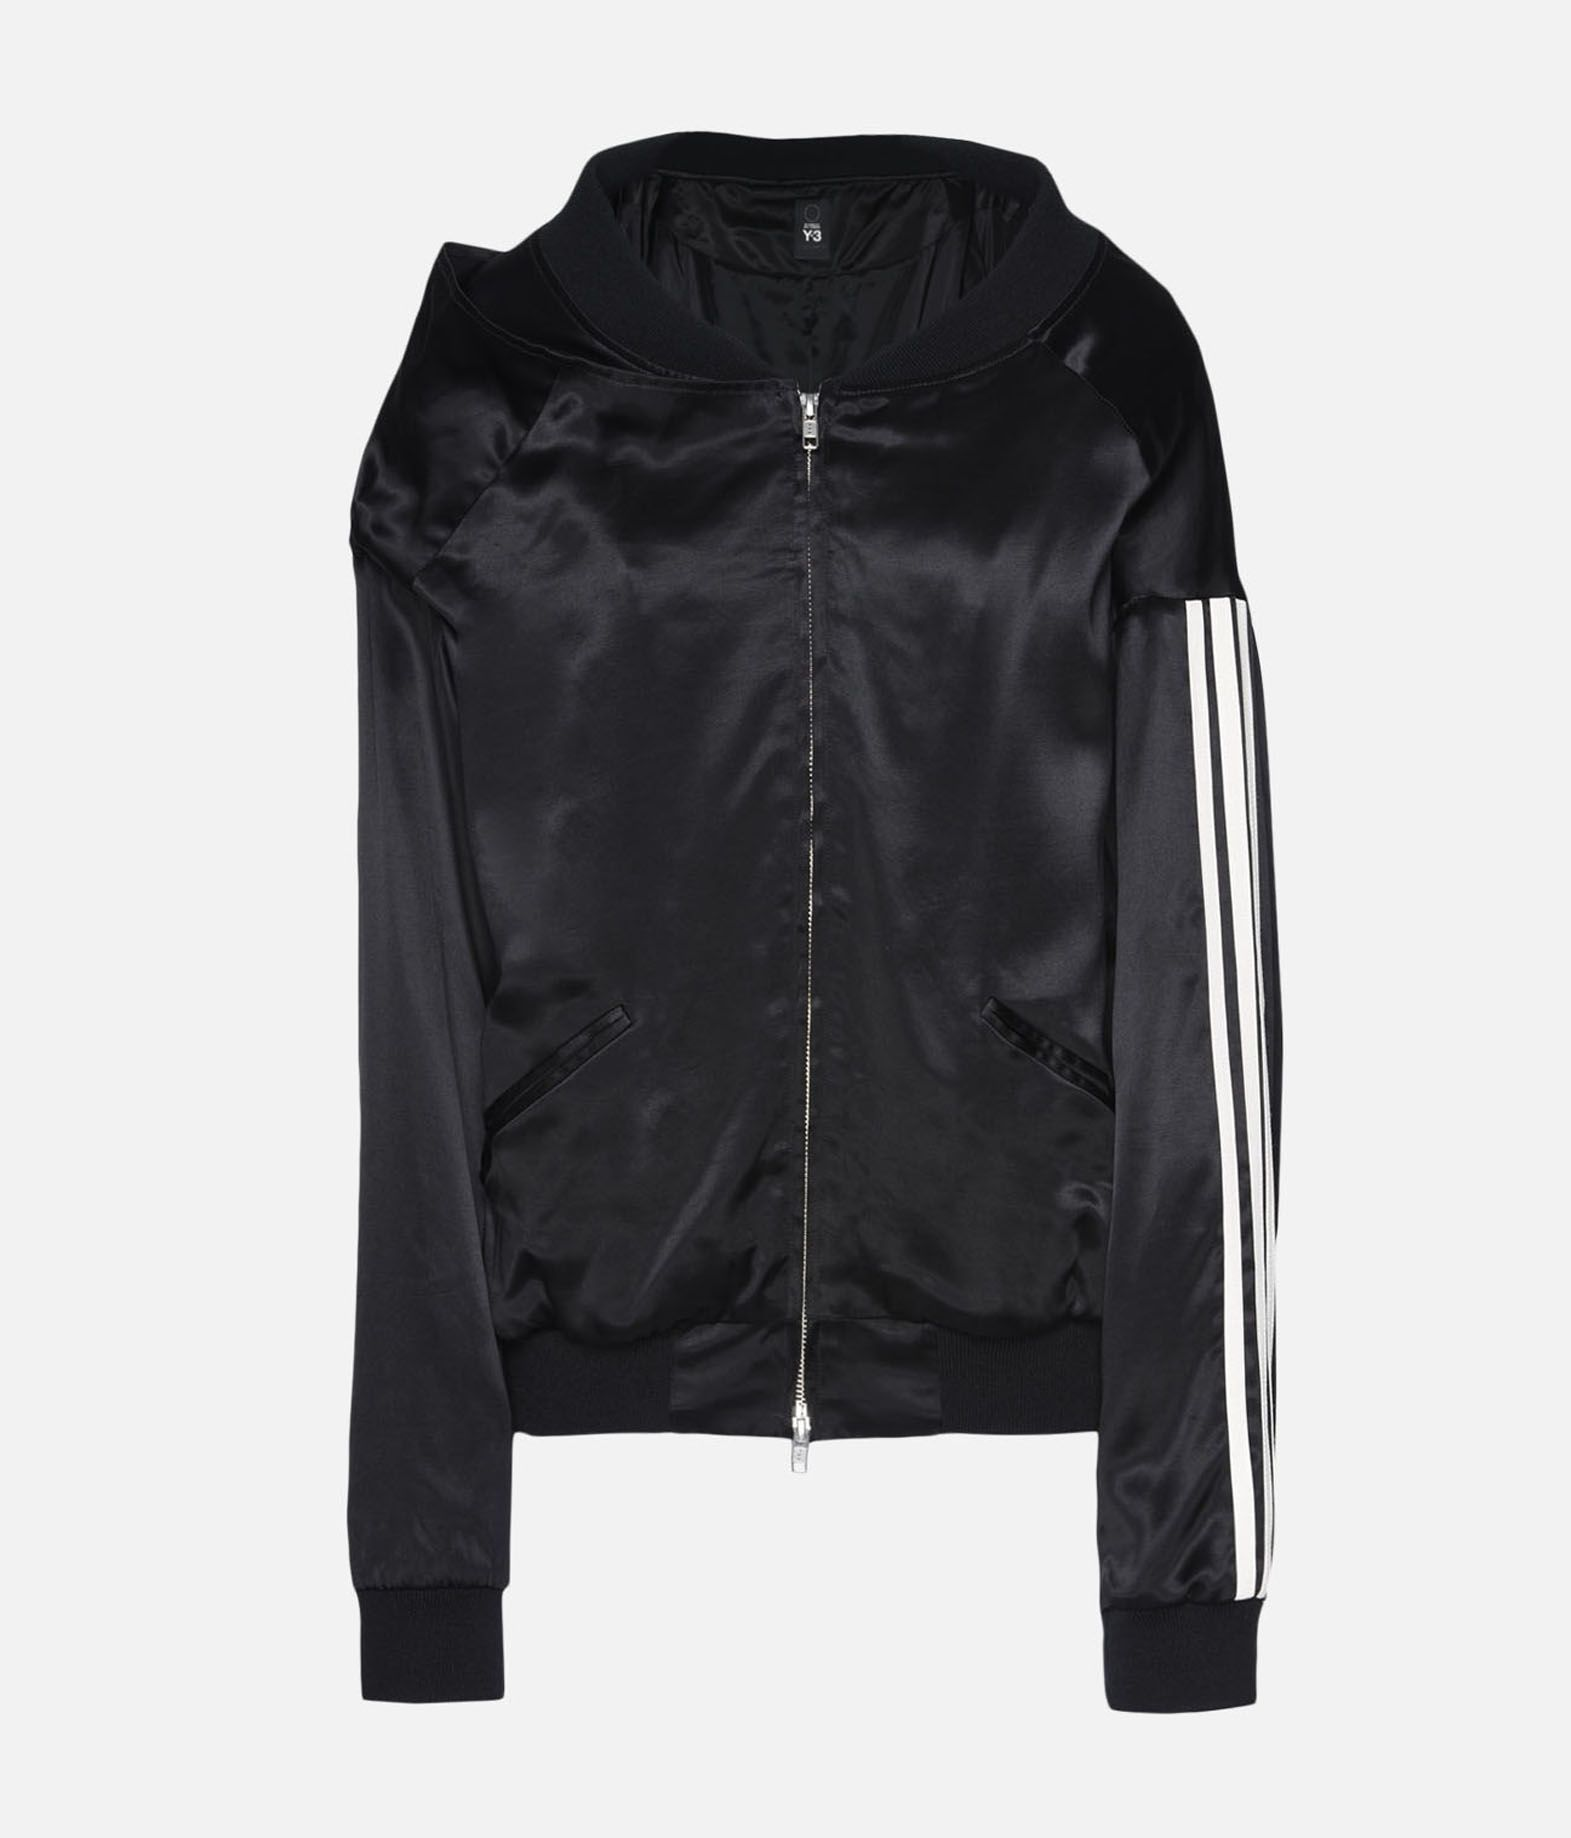 Y-3 Y-3 3-Stripes Lux Track Jacket Track top Woman f